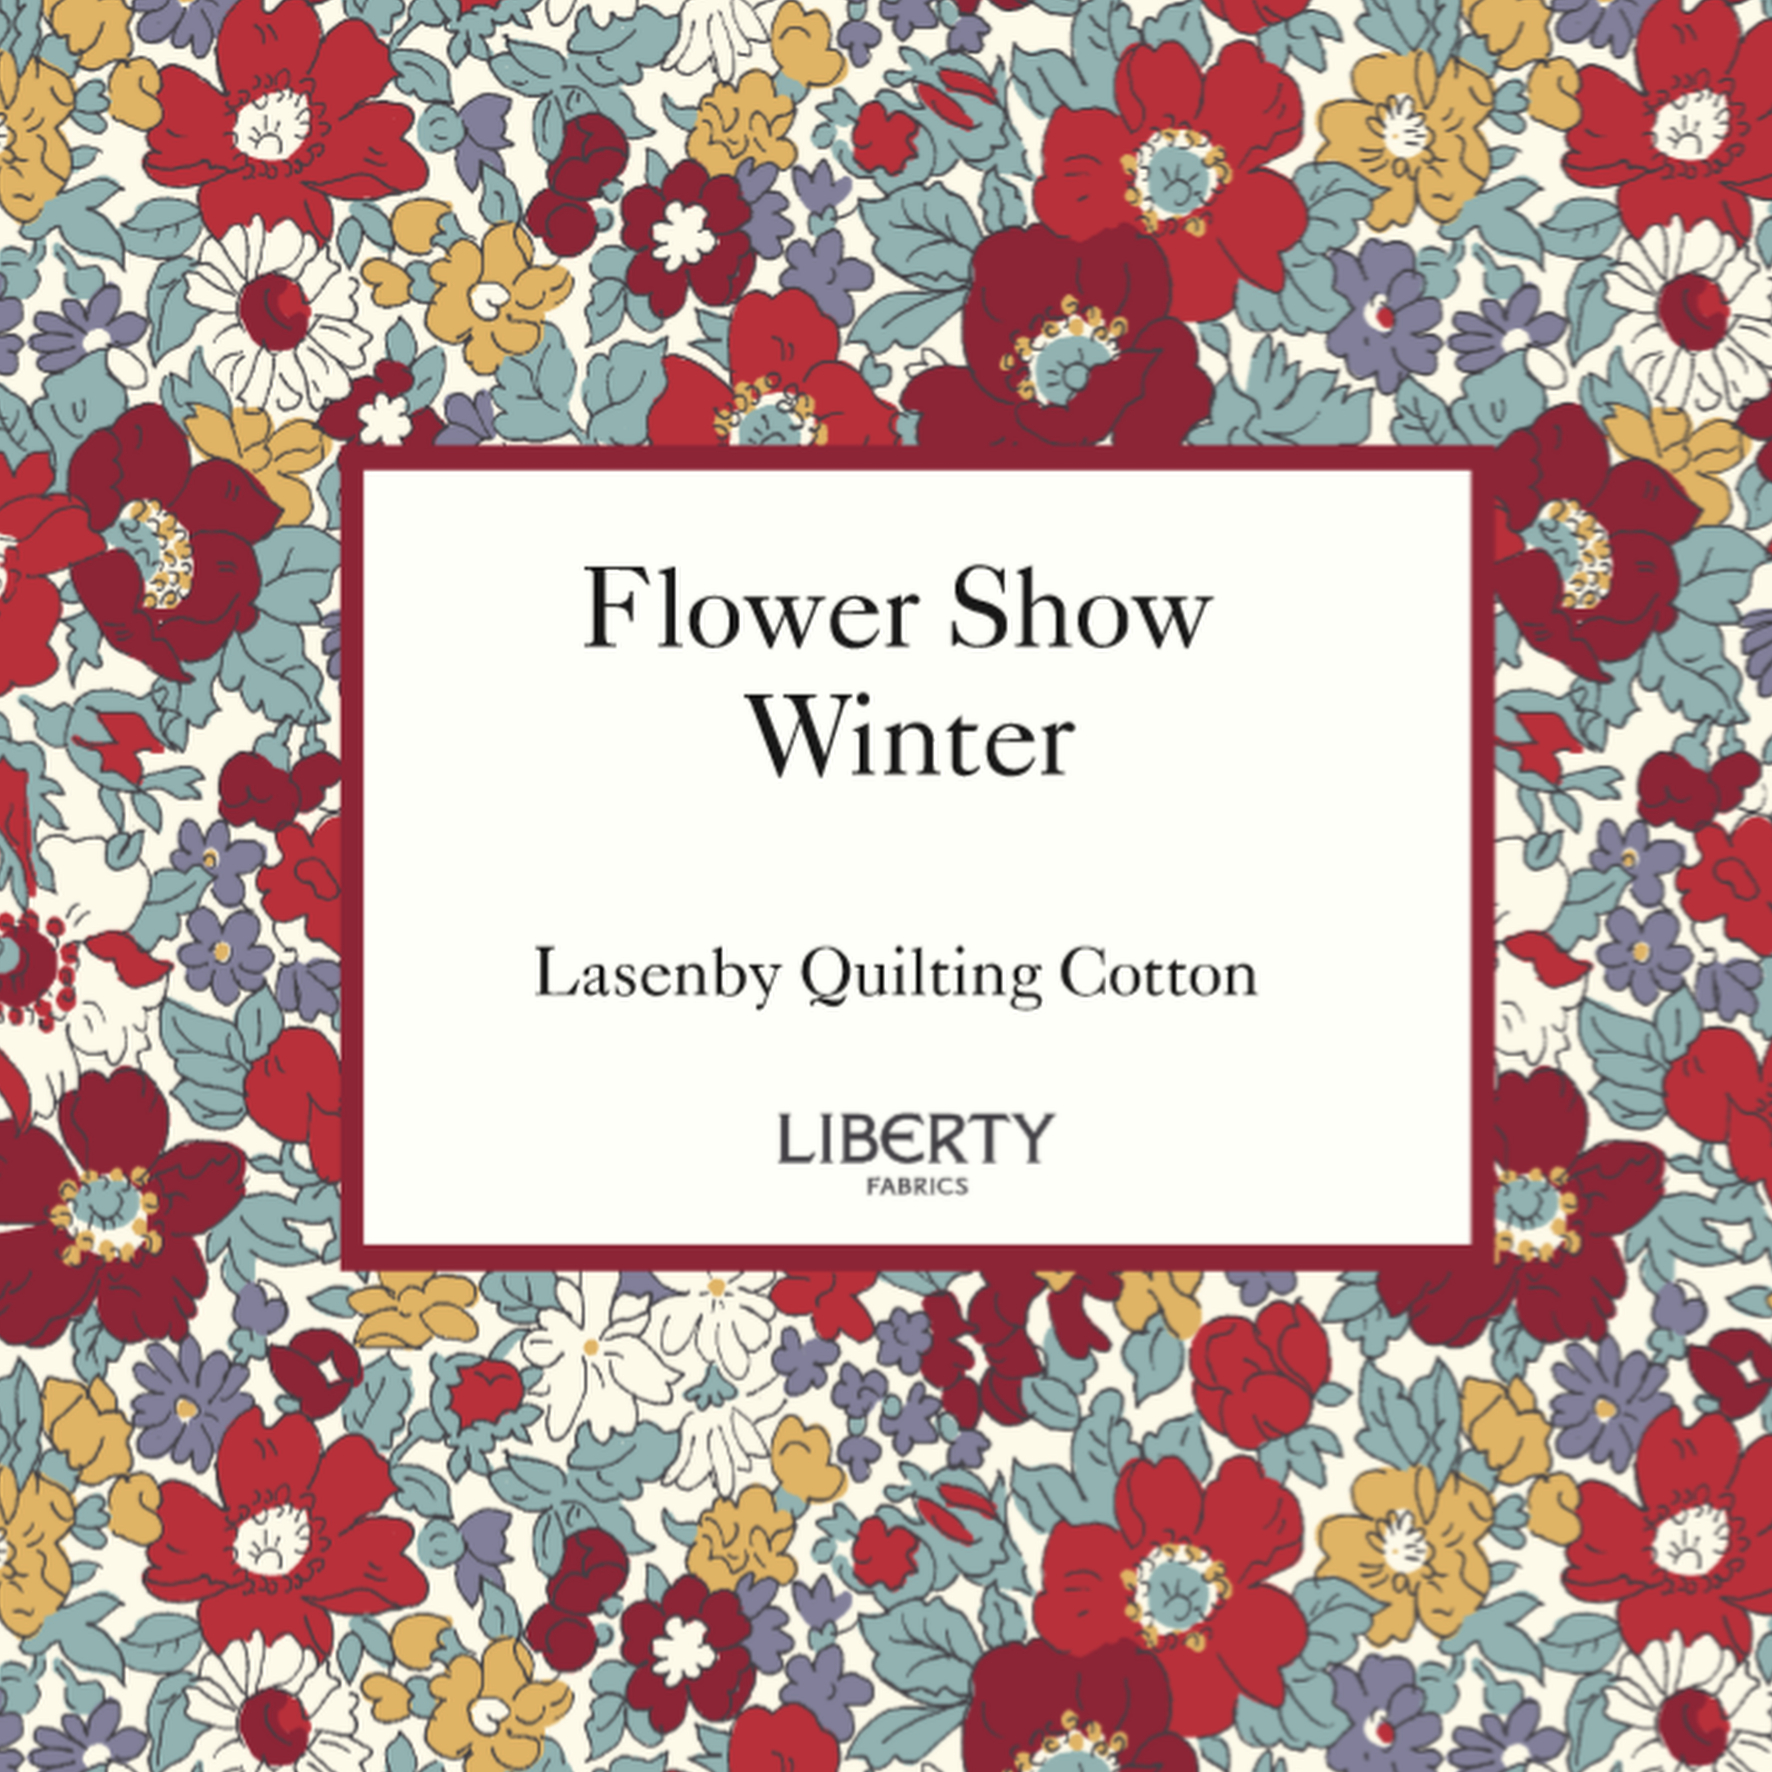 Liberty - Flower Show Winter 2020 - intro.jpg